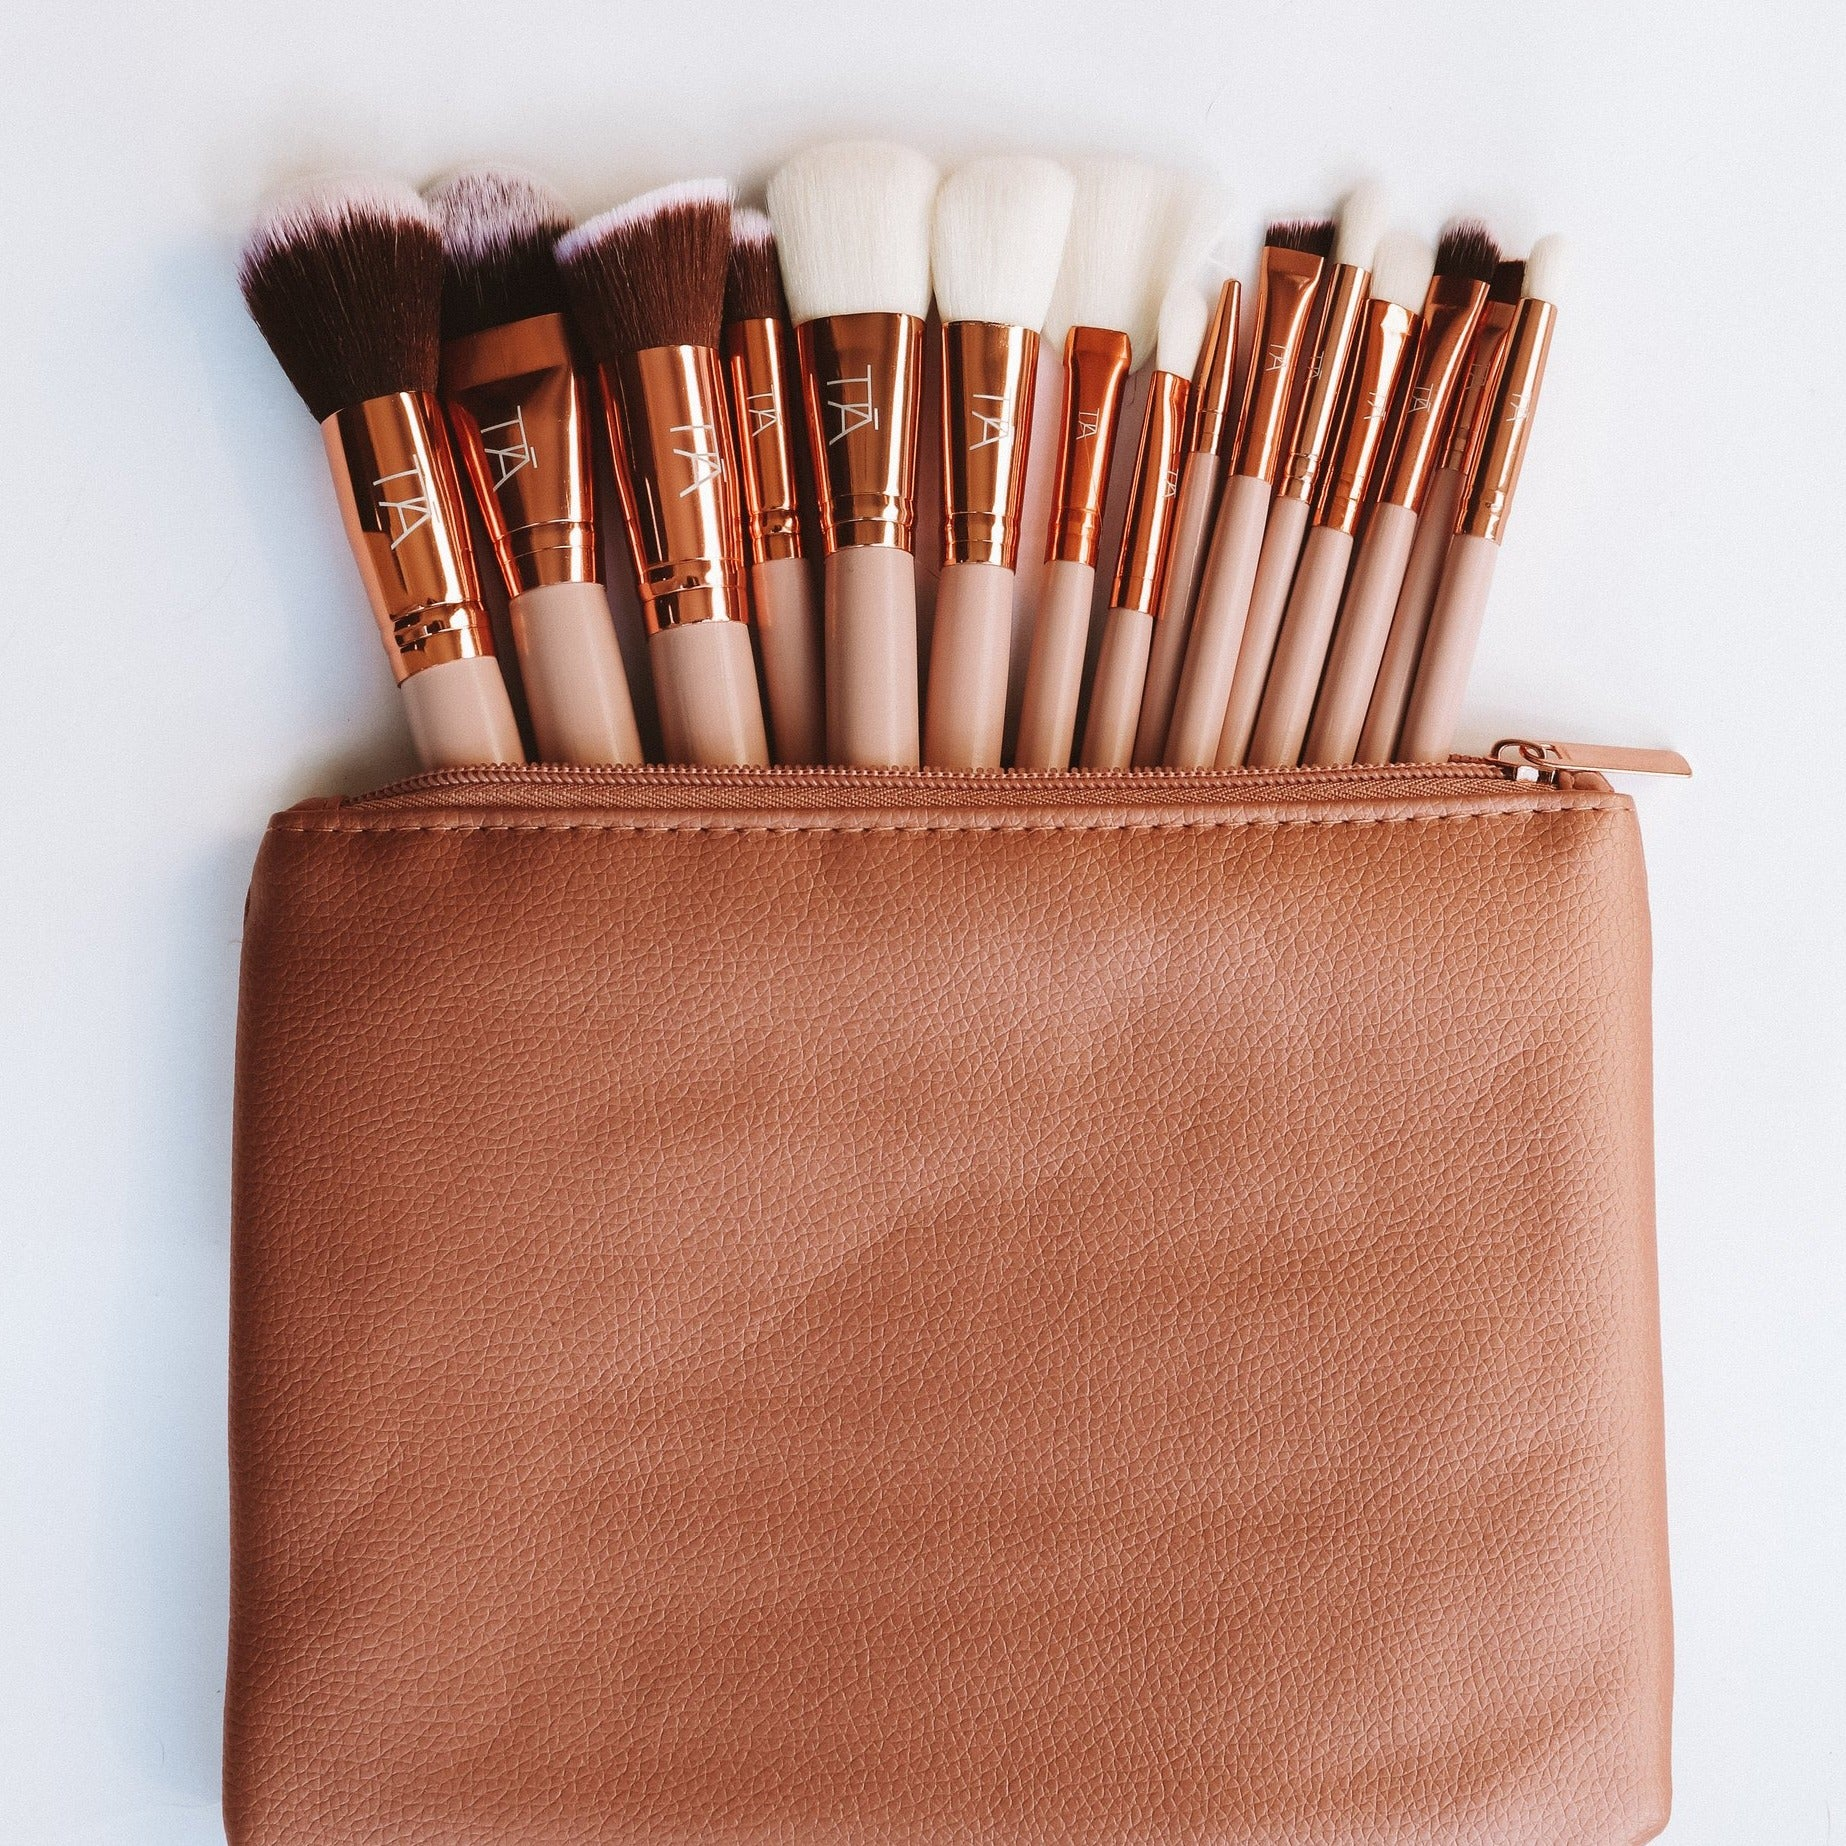 TIĀ Classic 15pce Brush Set